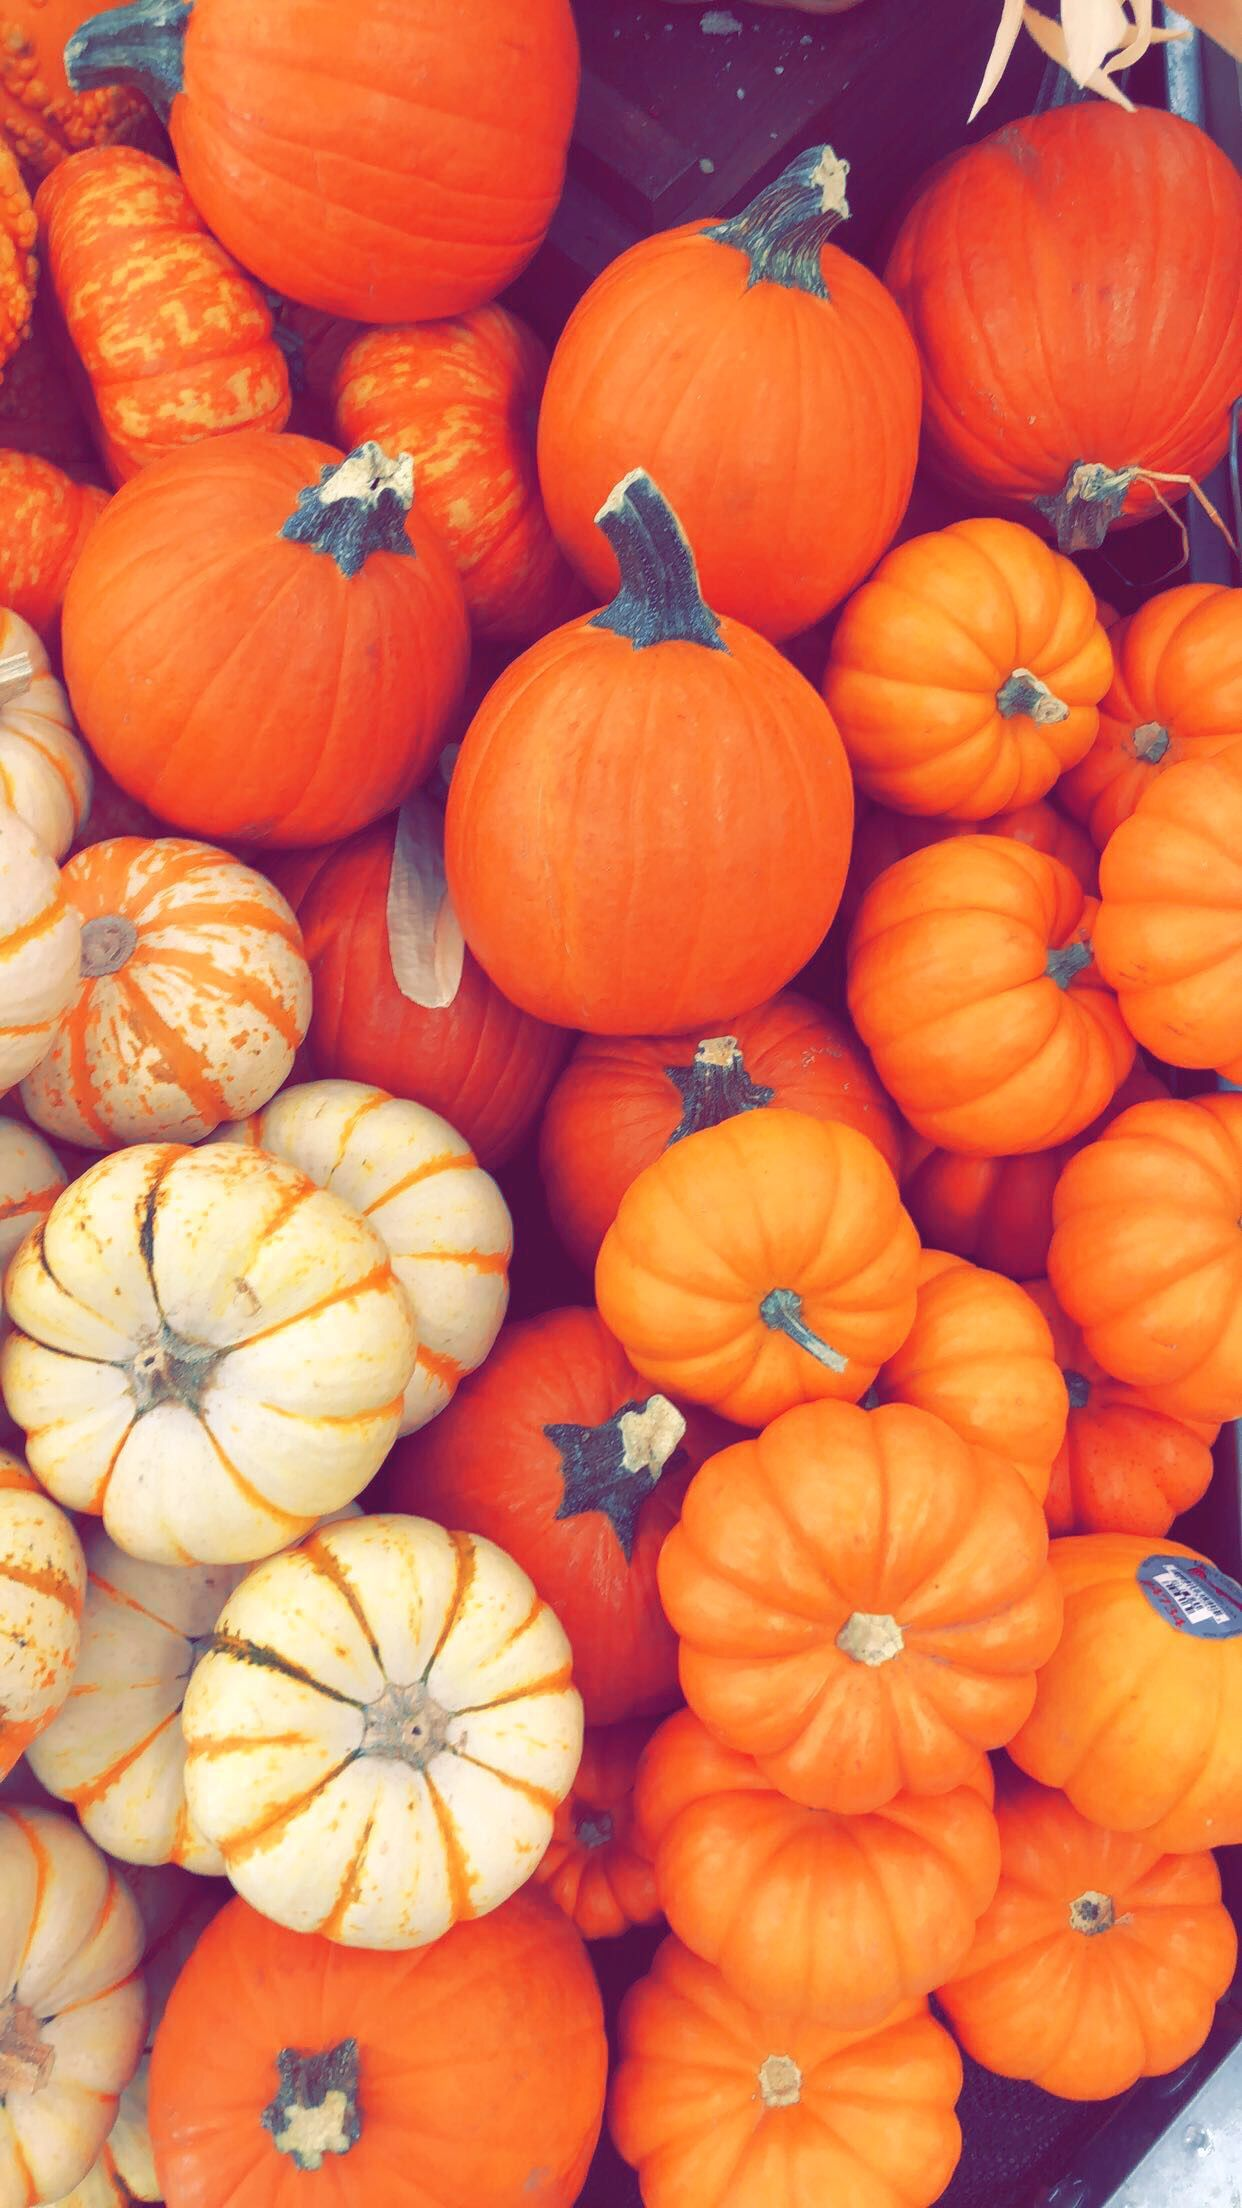 Fall Pumpkin wallpaper Holidays in 2019 Iphone wallpaper fall 1242x2208